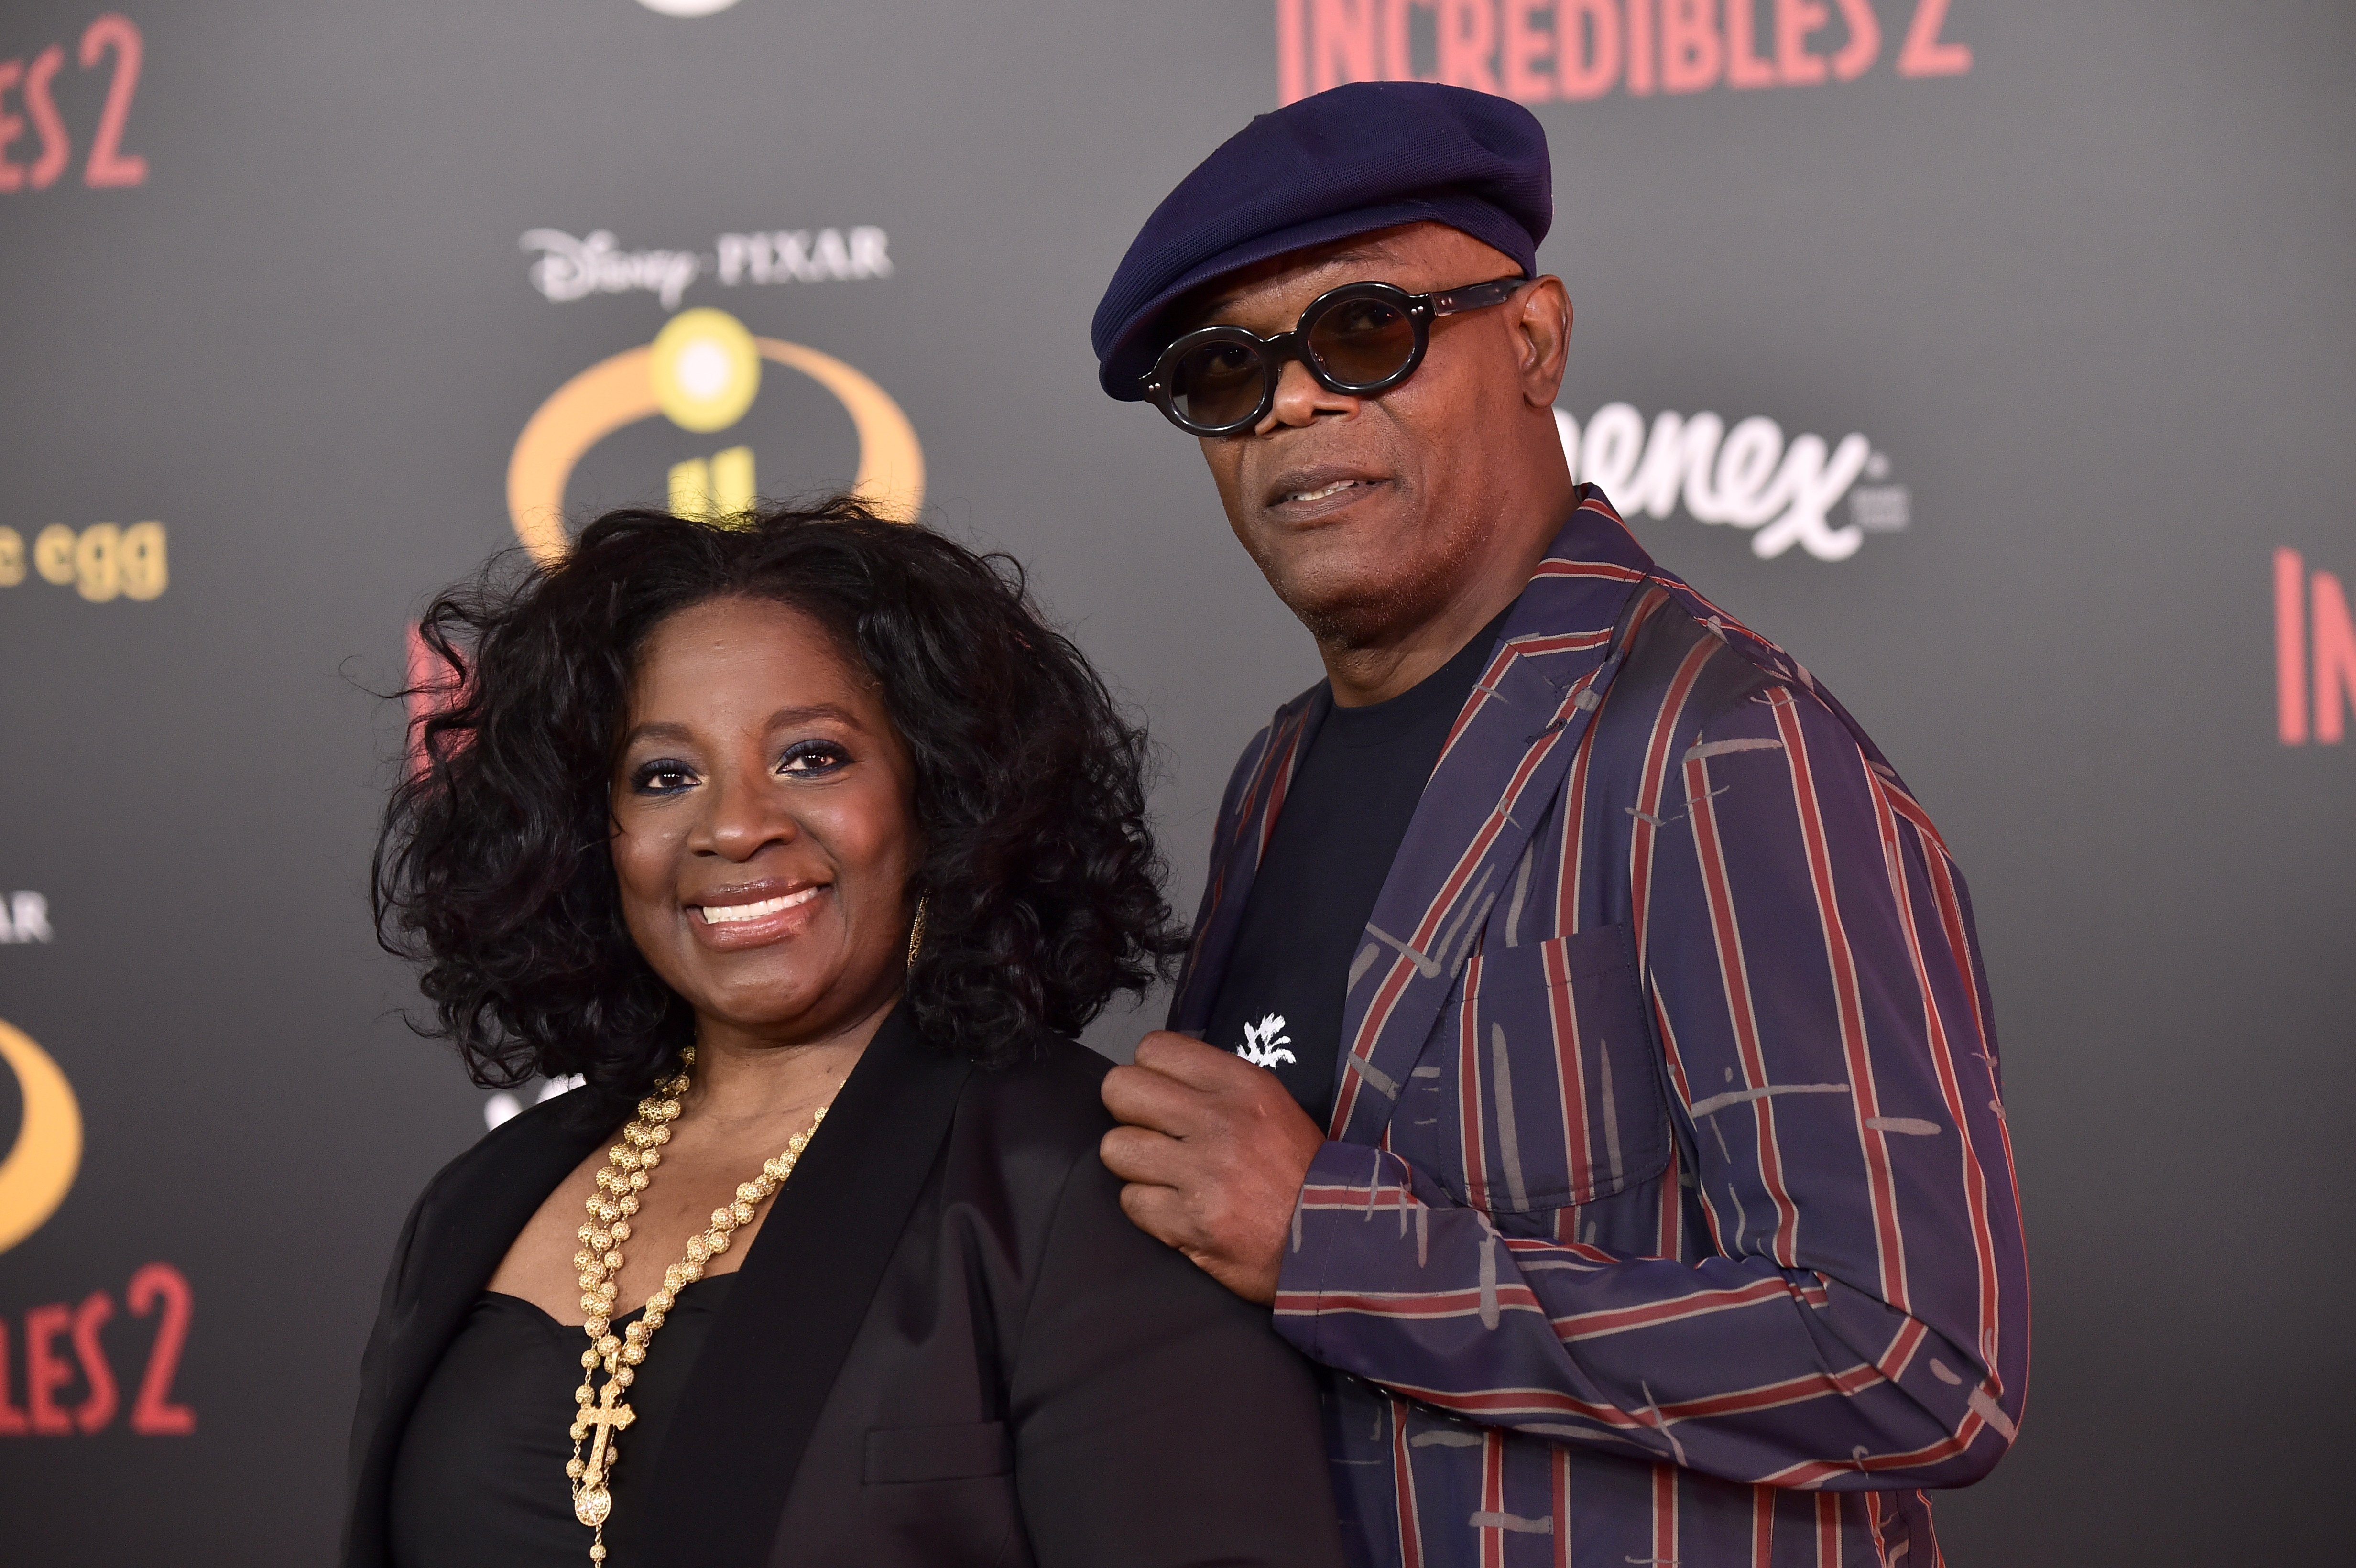 """Samuel L. Jackson & LaTanya Richardson at the Premiere Of """"Incredibles 2"""" on June 5, 2018 in Los Angeles, California 